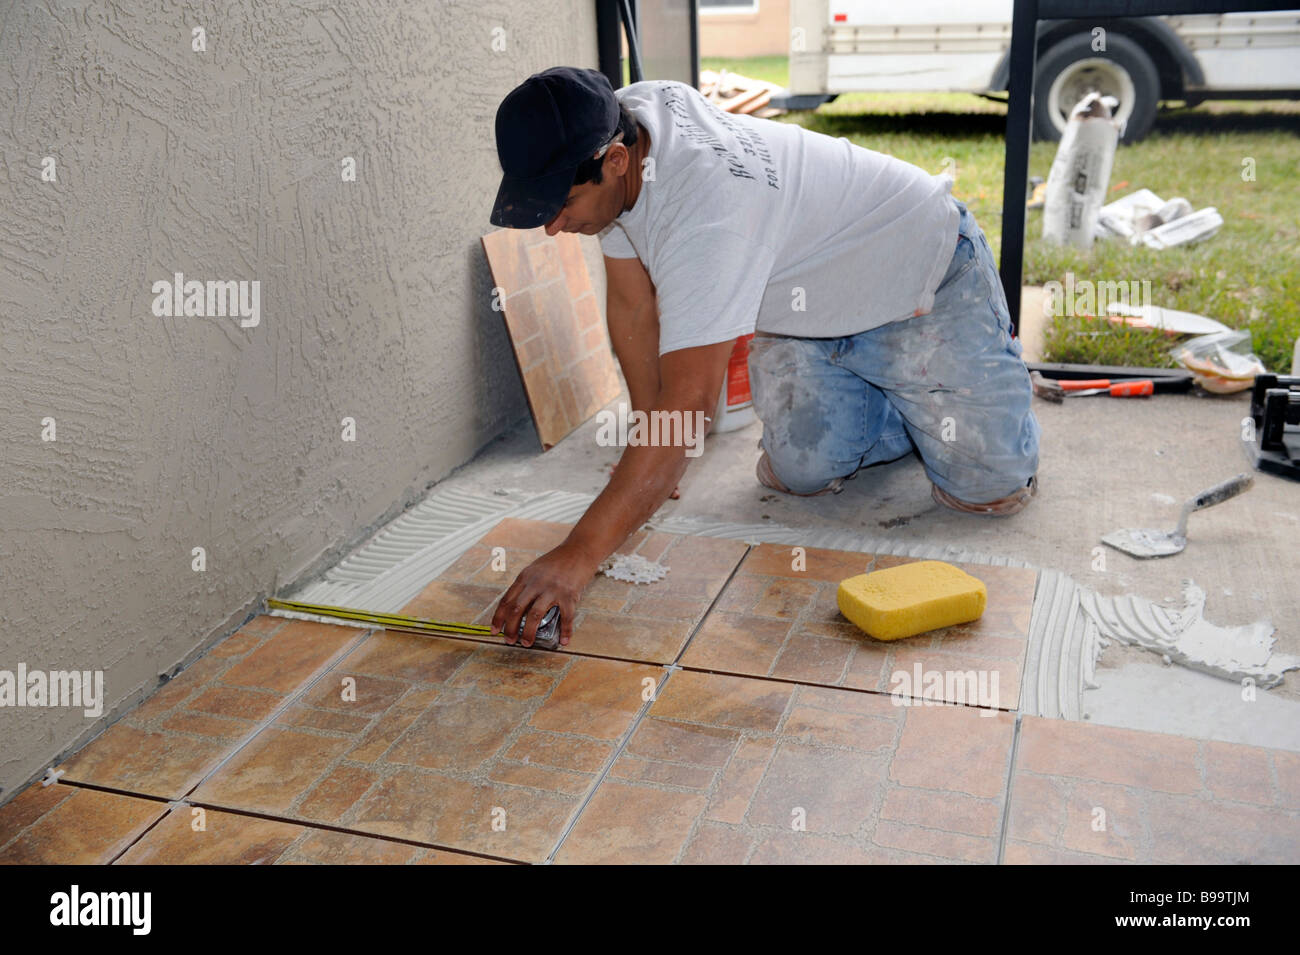 Male Hispanic Lays Ceramic Tile On Cement Floor In Patio Lanai